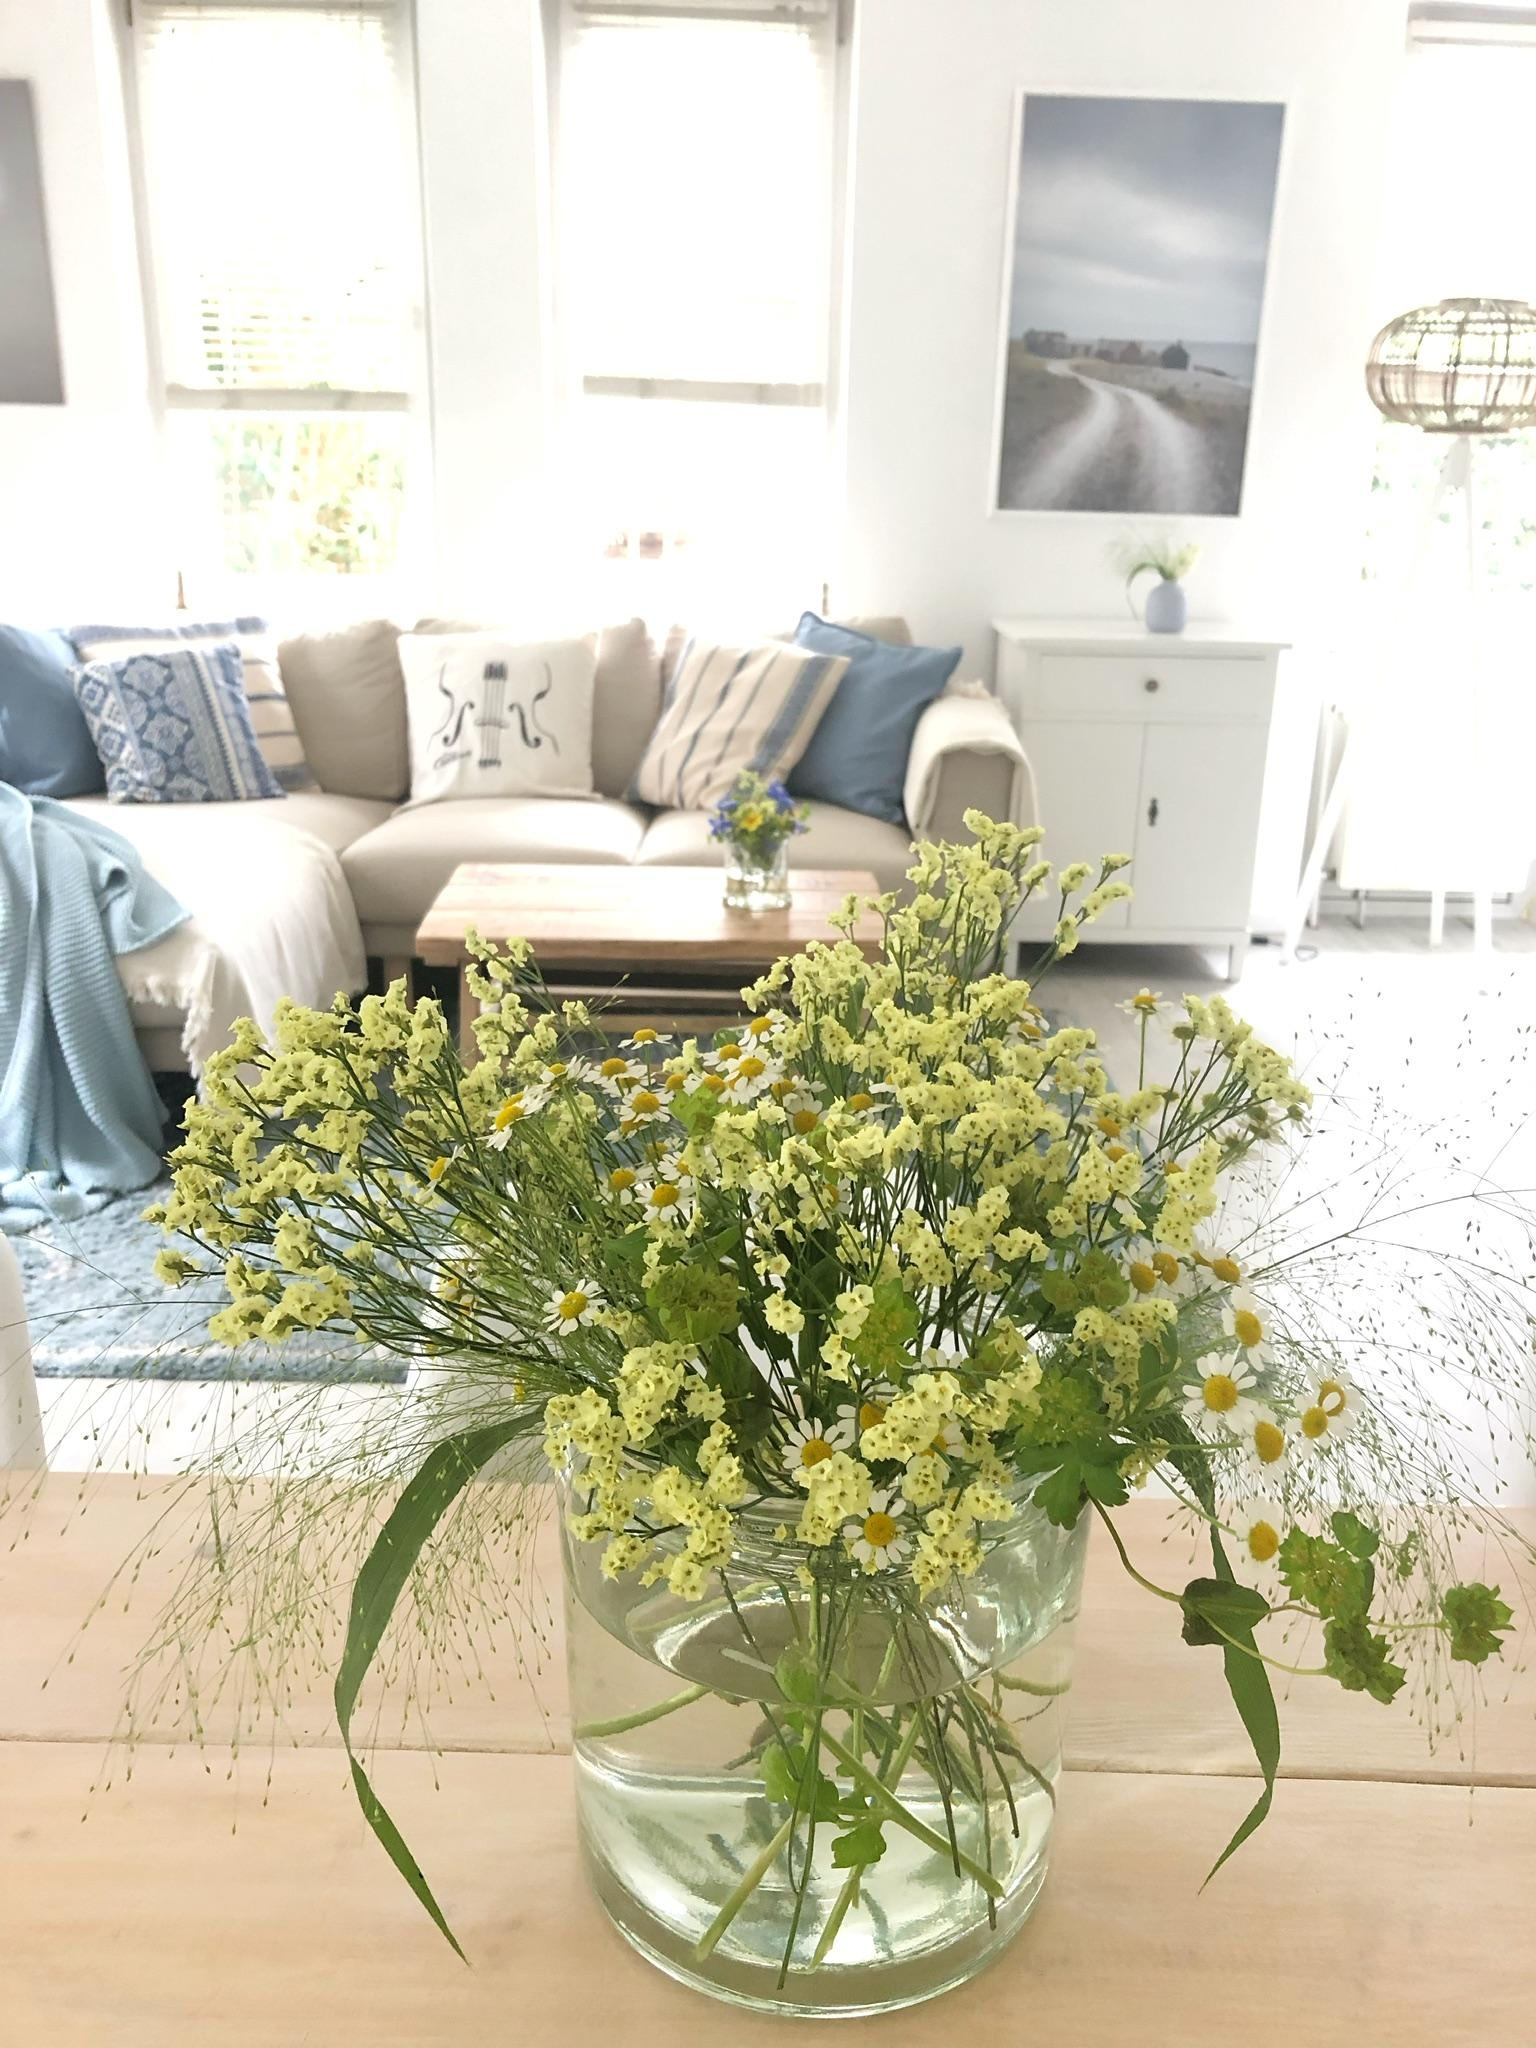 #freshflowerfriday#couchstyle#myhome#interior#livingroom#flower#scandihome